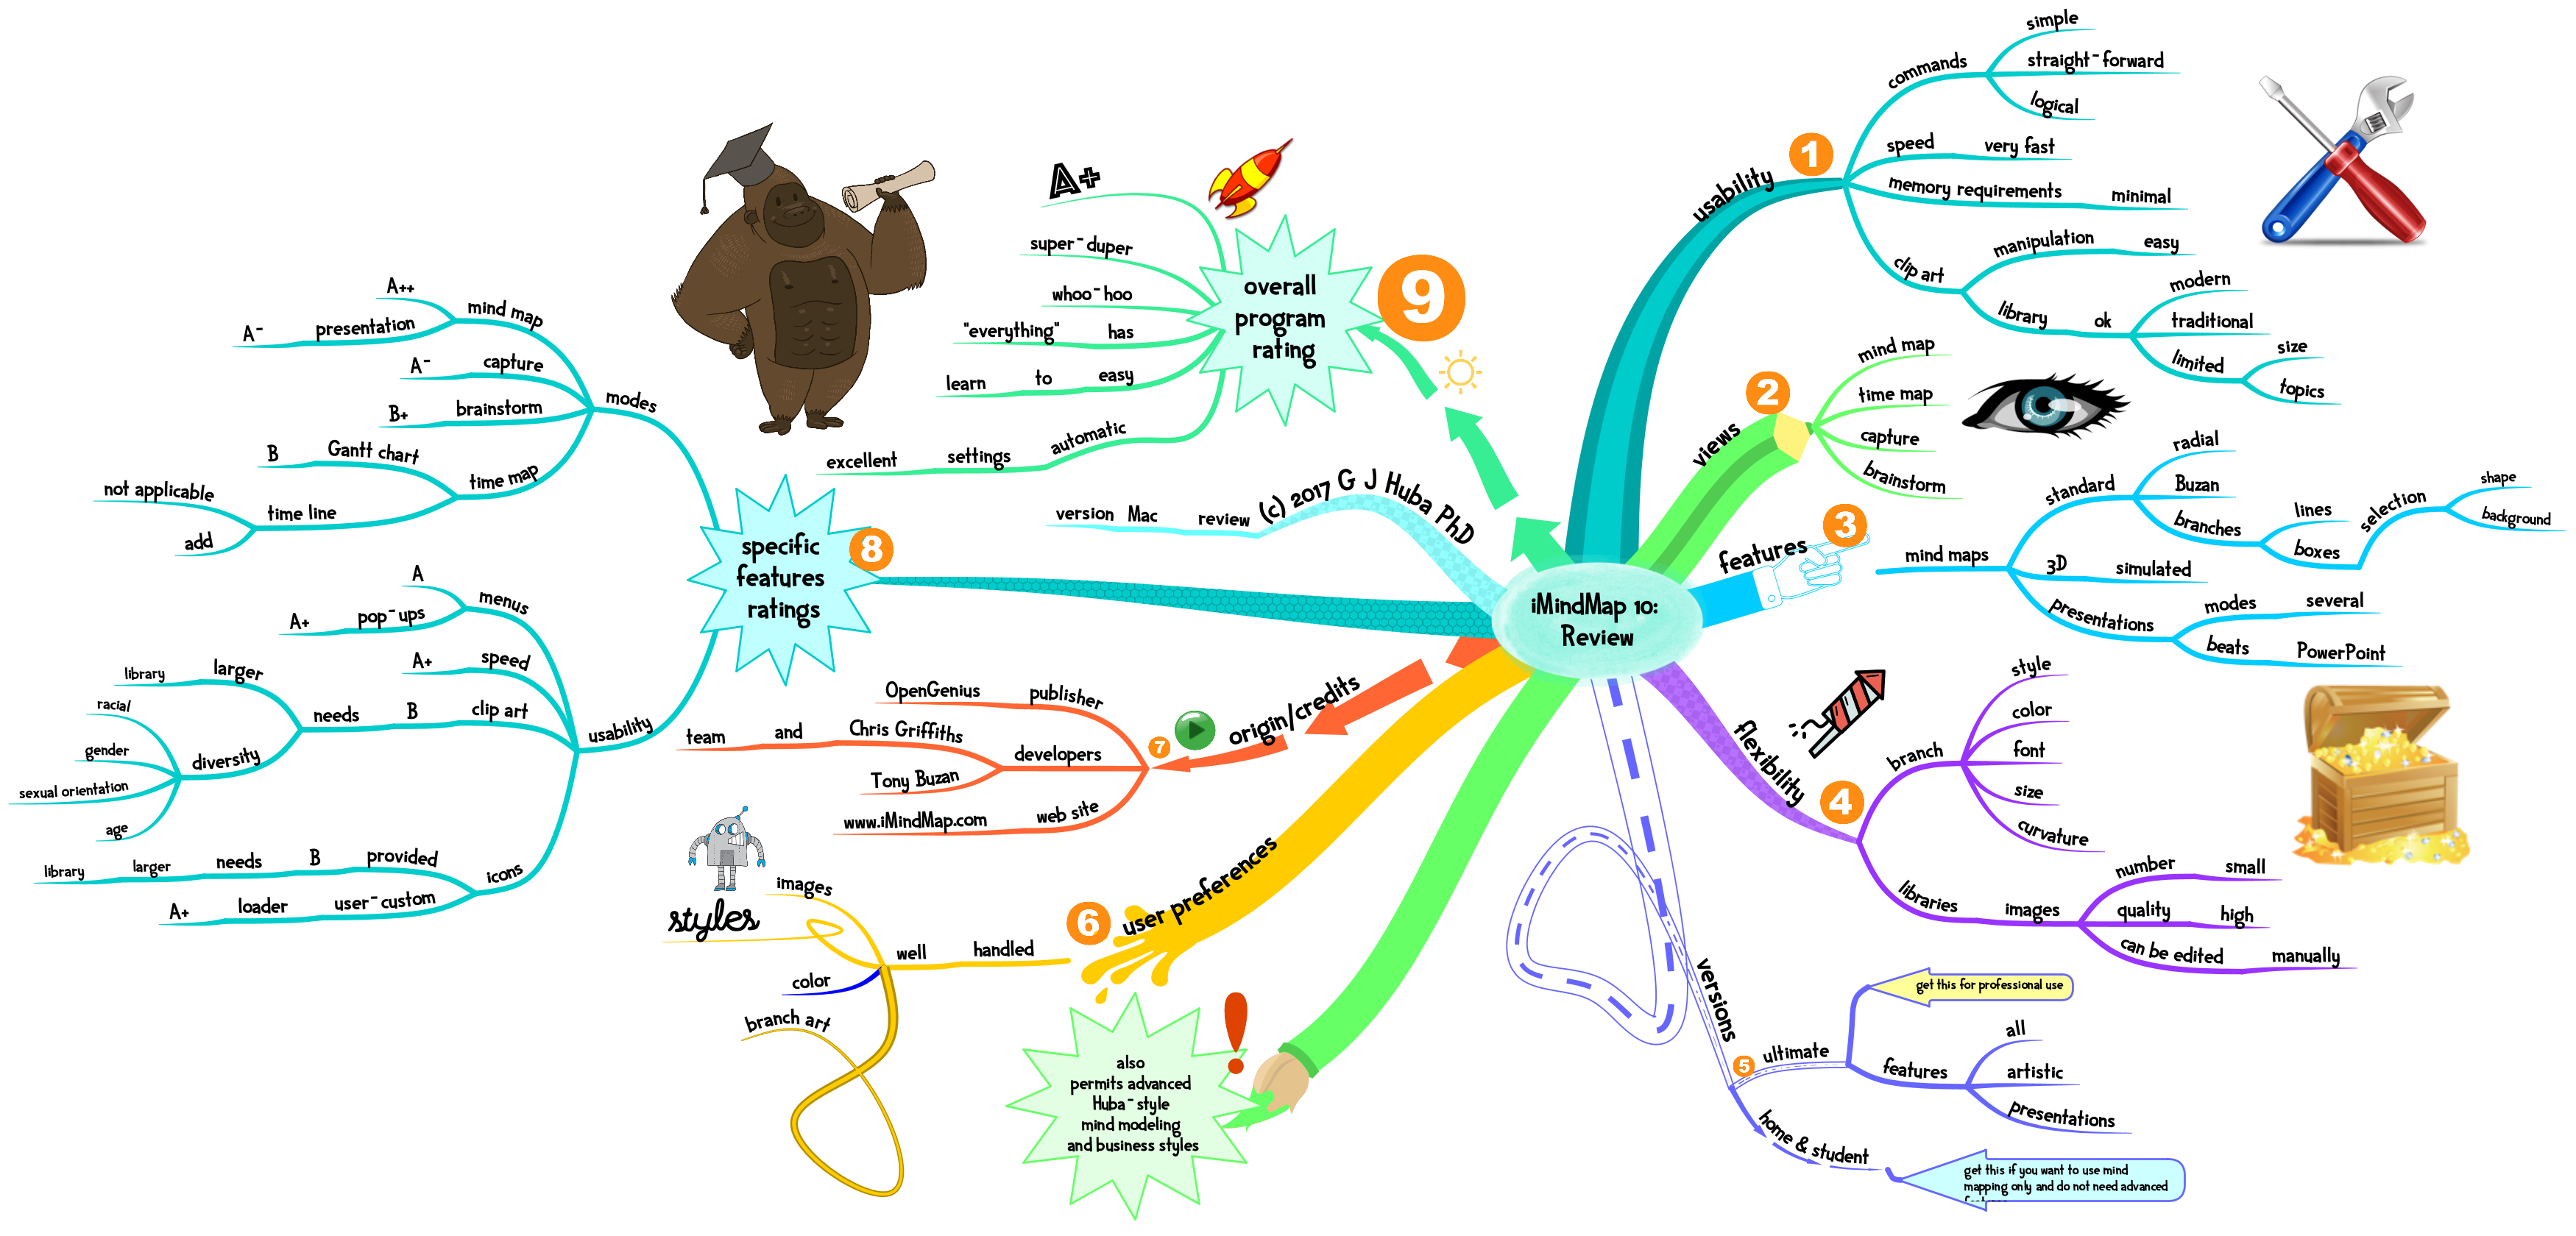 imindmap-10-review